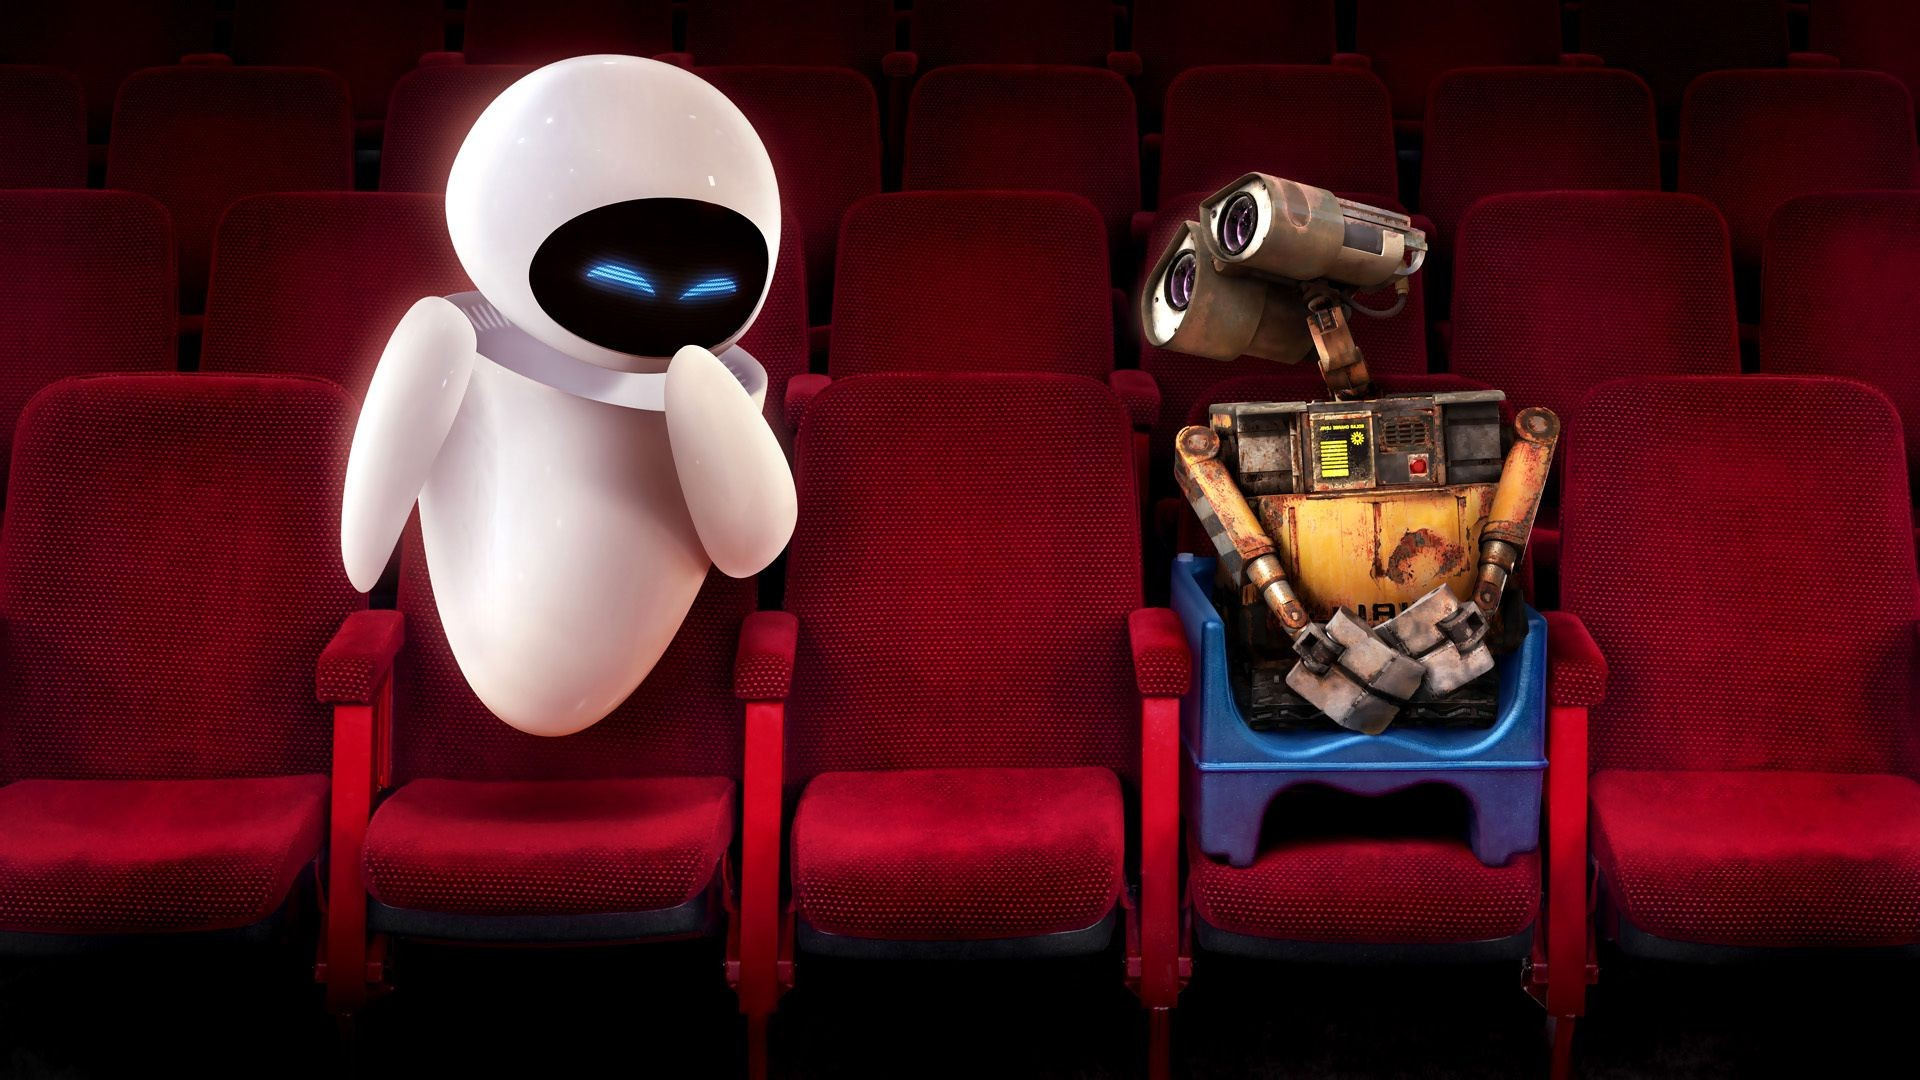 Wall E Eve Cinema Shy Laugh Red Cres Android Wallpapers